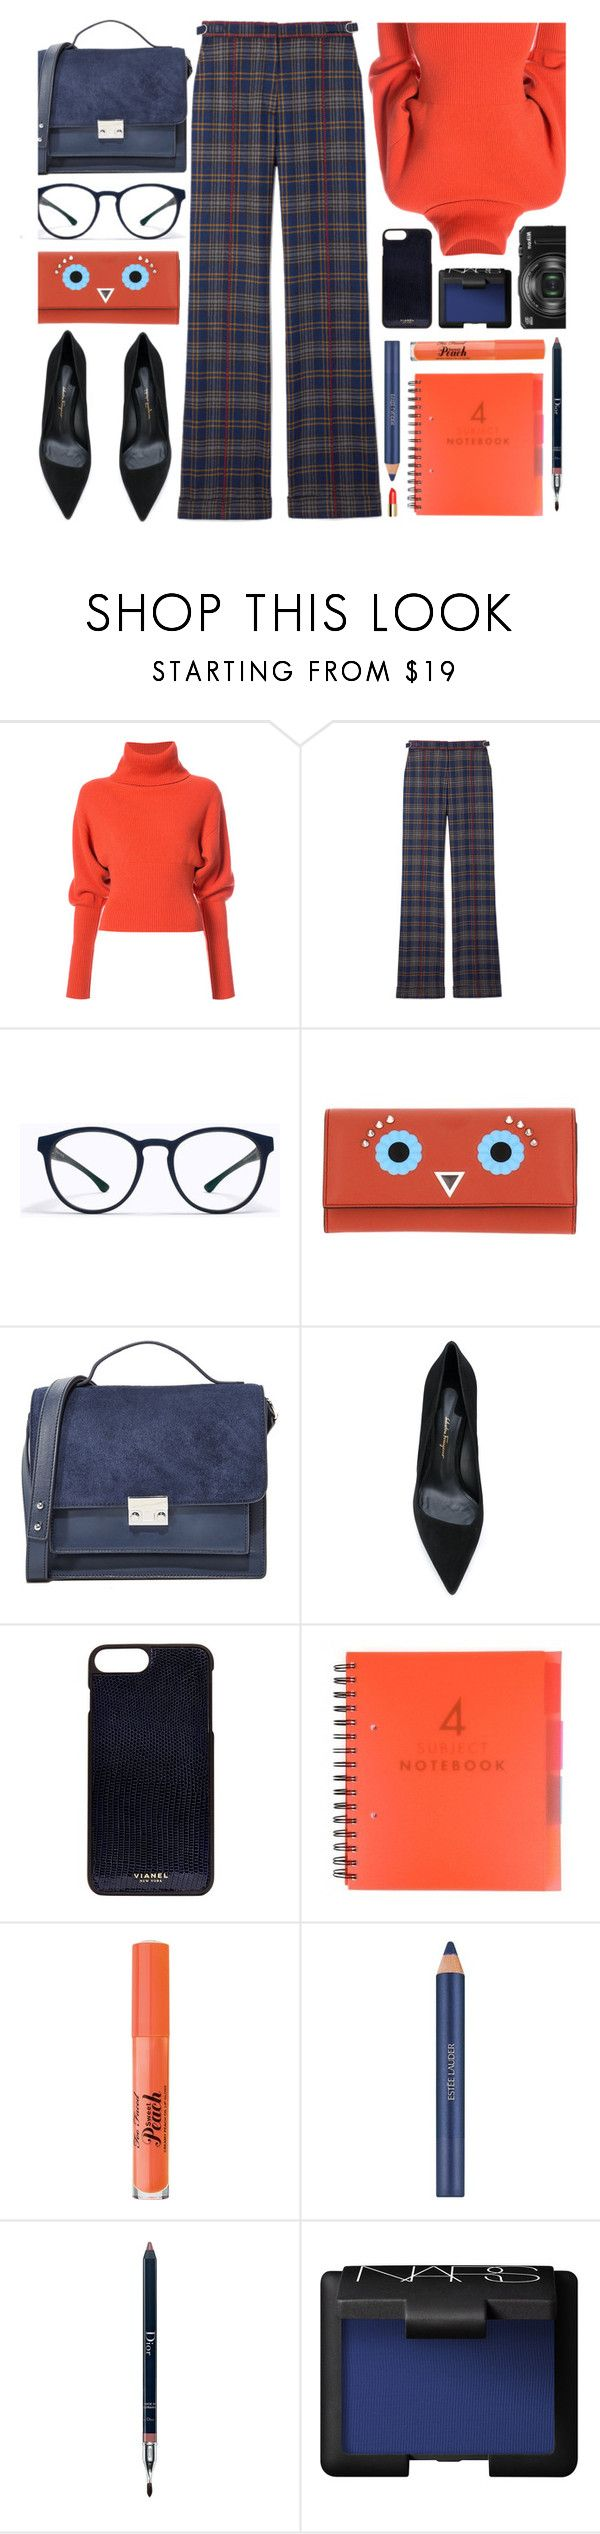 """Oxford"" by smartbuyglasses-uk ❤ liked on Polyvore featuring Creatures of the Wind, Gabriela Hearst, Mykita, Fendi, Loeffler Randall, Salvatore Ferragamo, Vianel, Too Faced Cosmetics, Estée Lauder and Christian Dior"